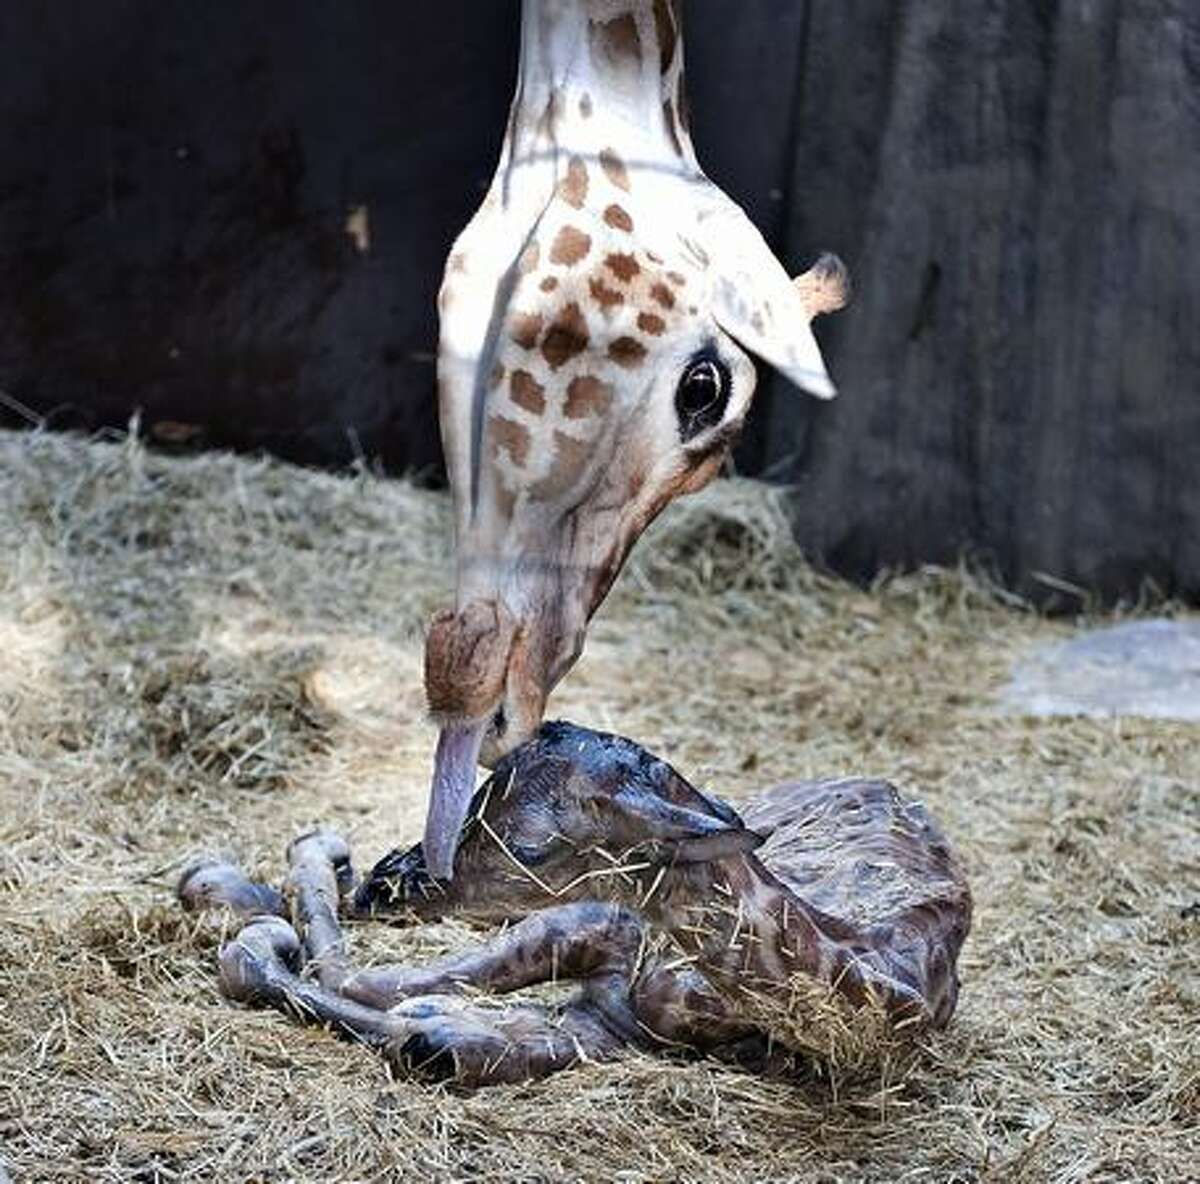 A giraffe foal is cleaned by its mother 'Jonna' shortly after it was born at Aalborg zoo in northern Jutland on Thursday, Feb. 11. AFP PHOTO / Henning Bagger / SCANPIX DANMARK